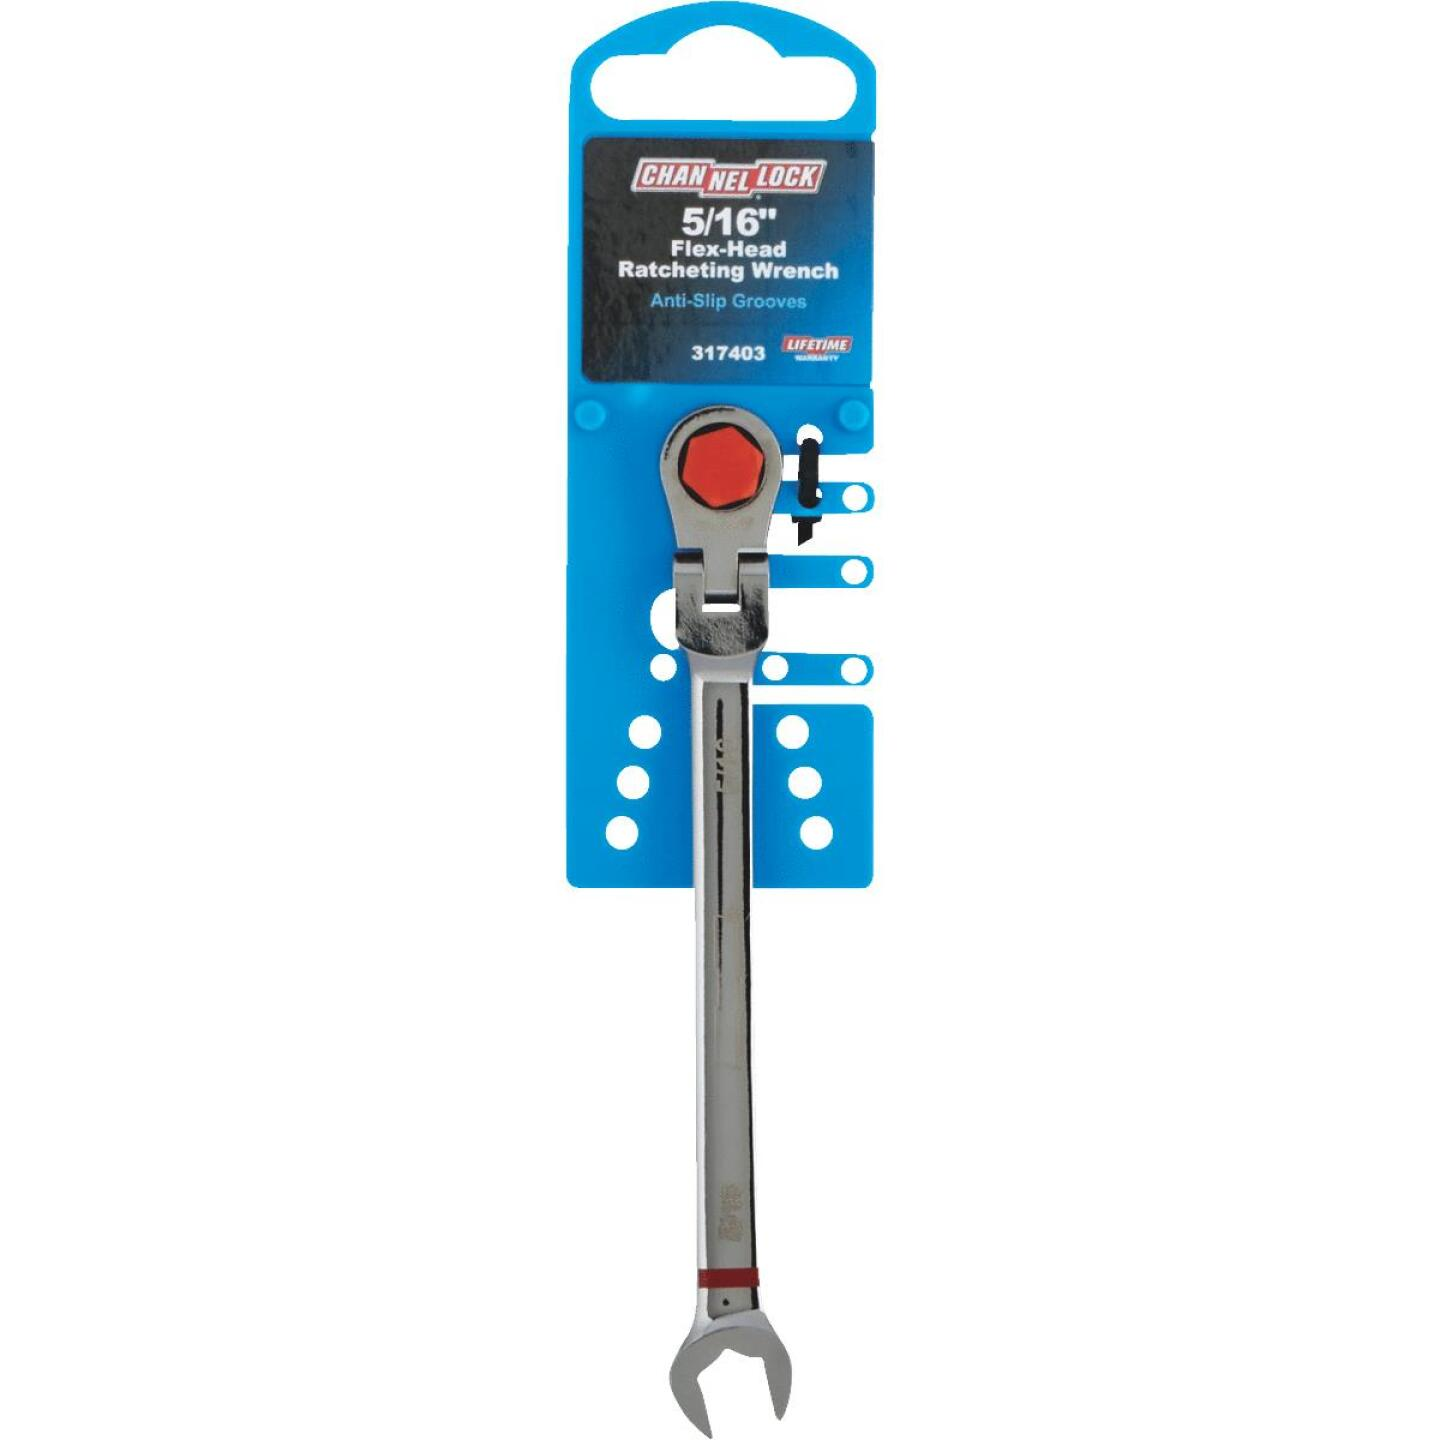 Channellock Standard 5/16 In. 12-Point Ratcheting Flex-Head Wrench Image 2